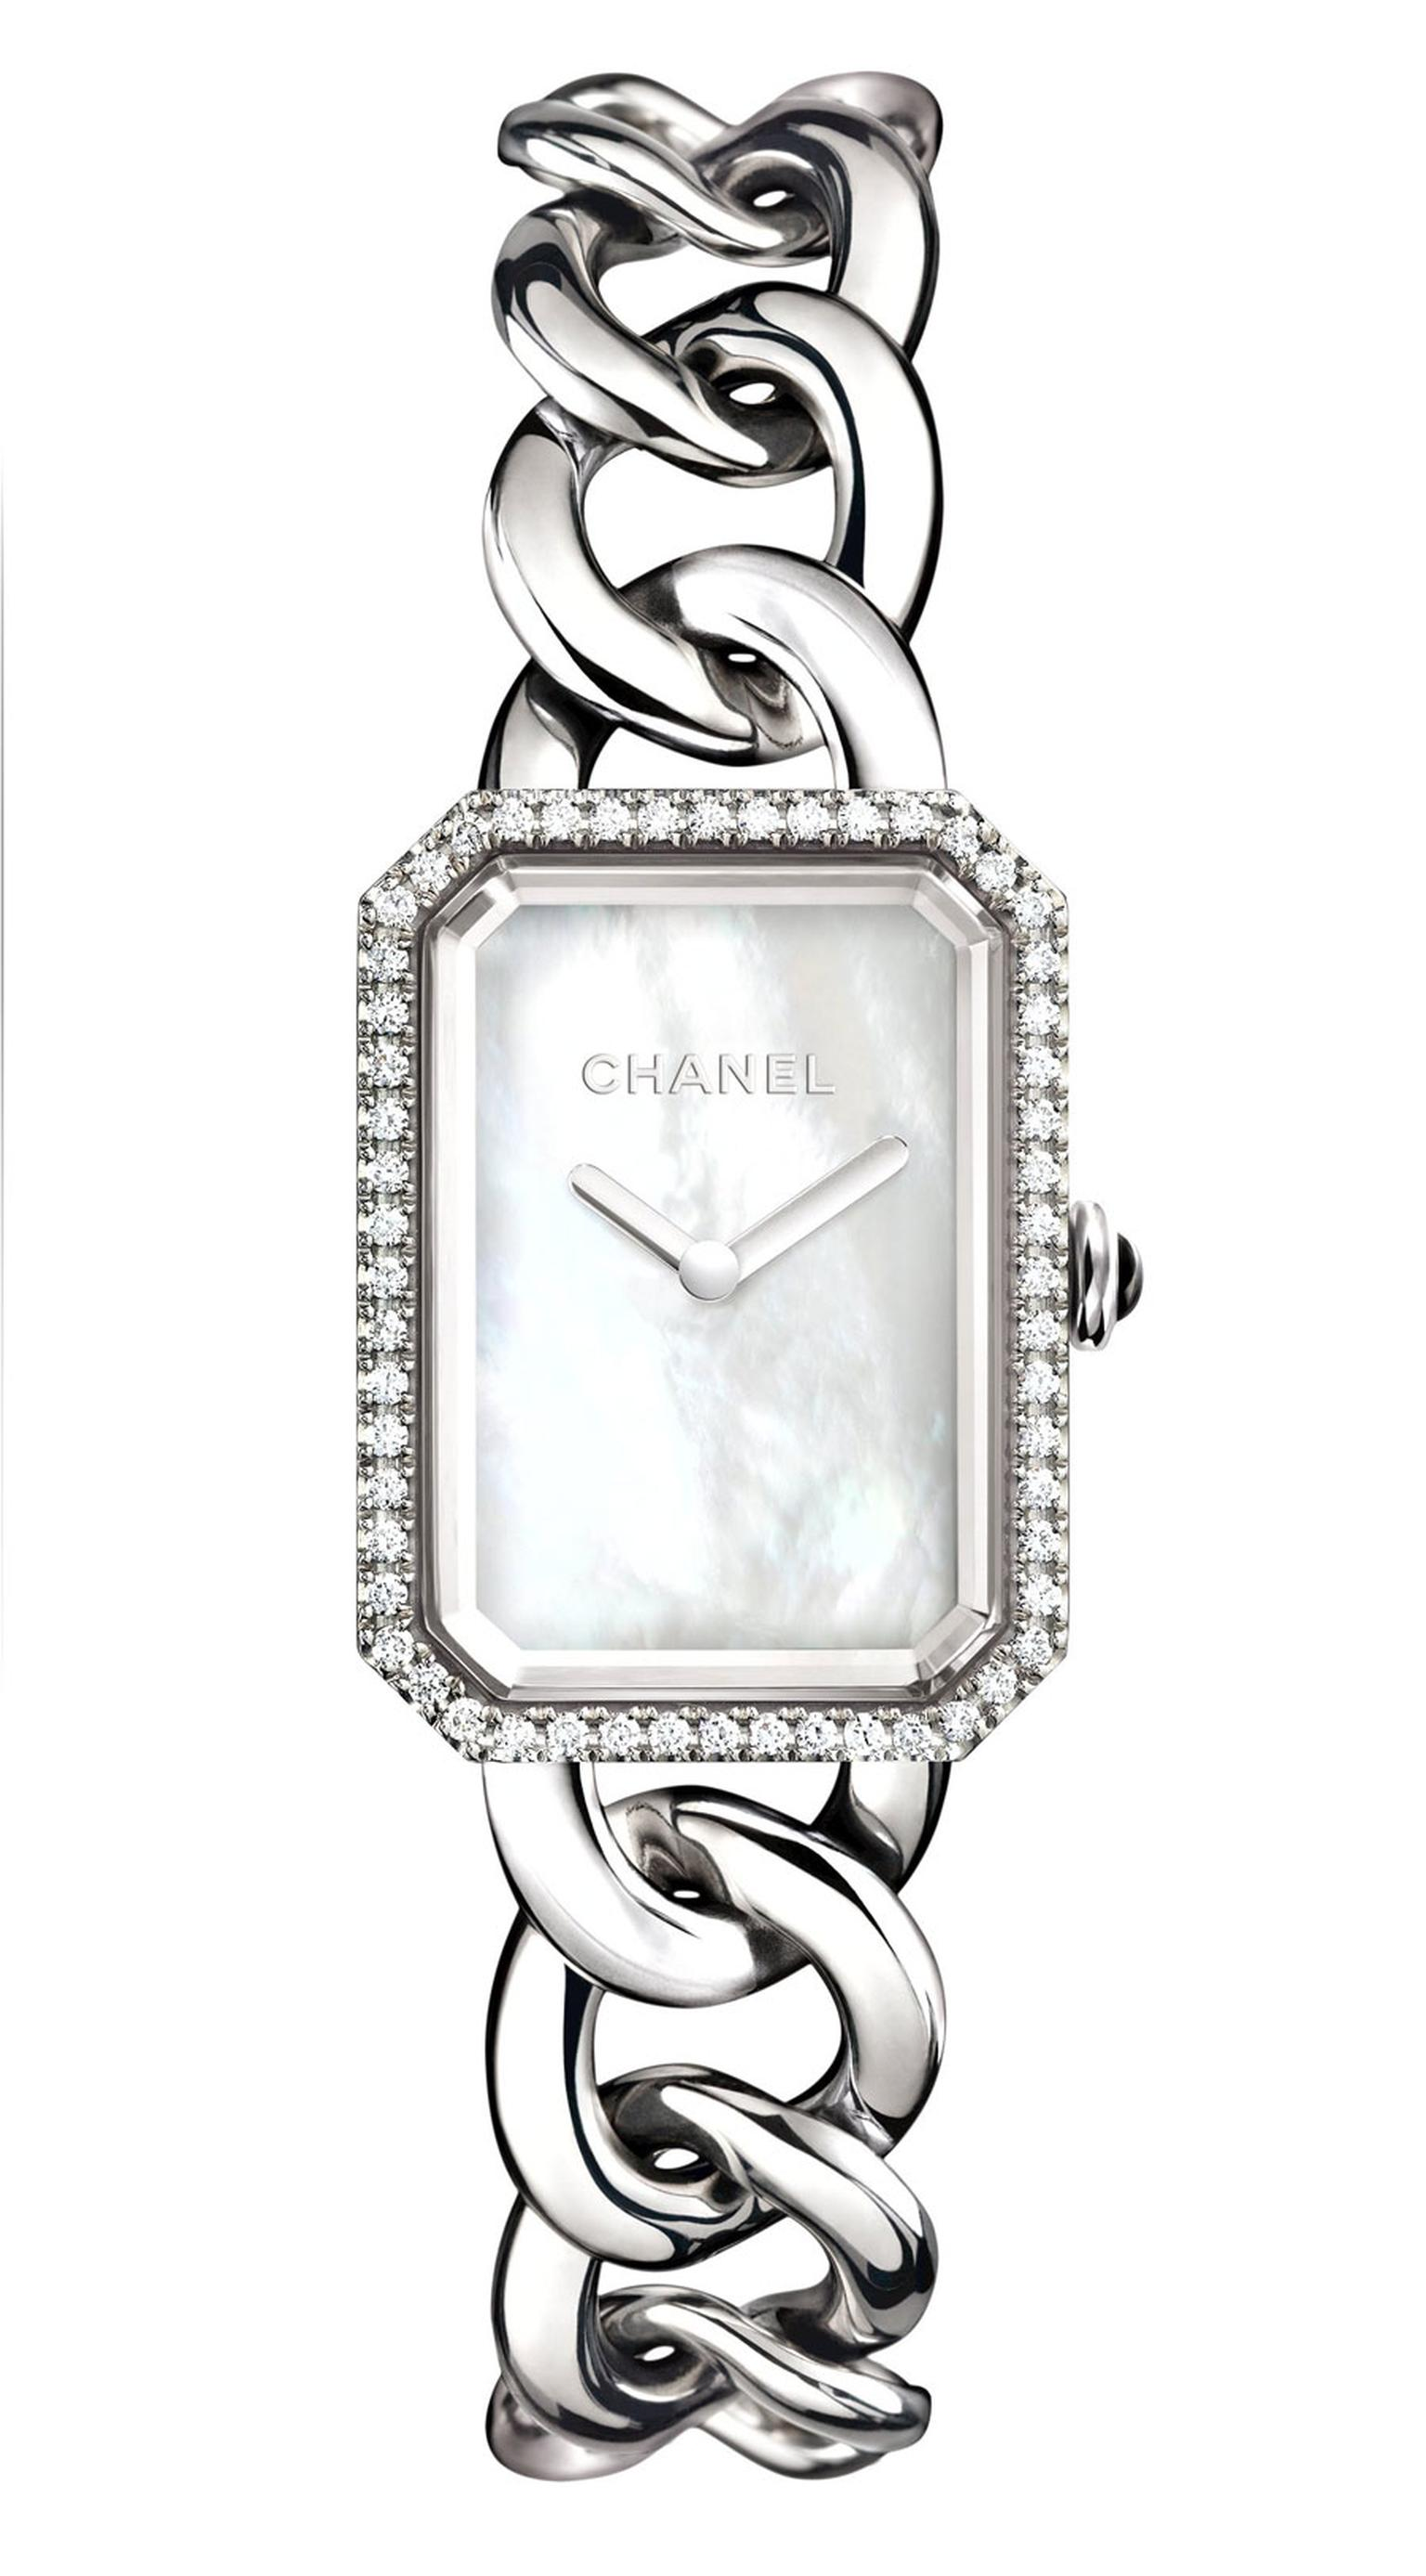 Chanel-Premiere-watch-acier-diamants-cadran-nacre-GM-H3255.jpg